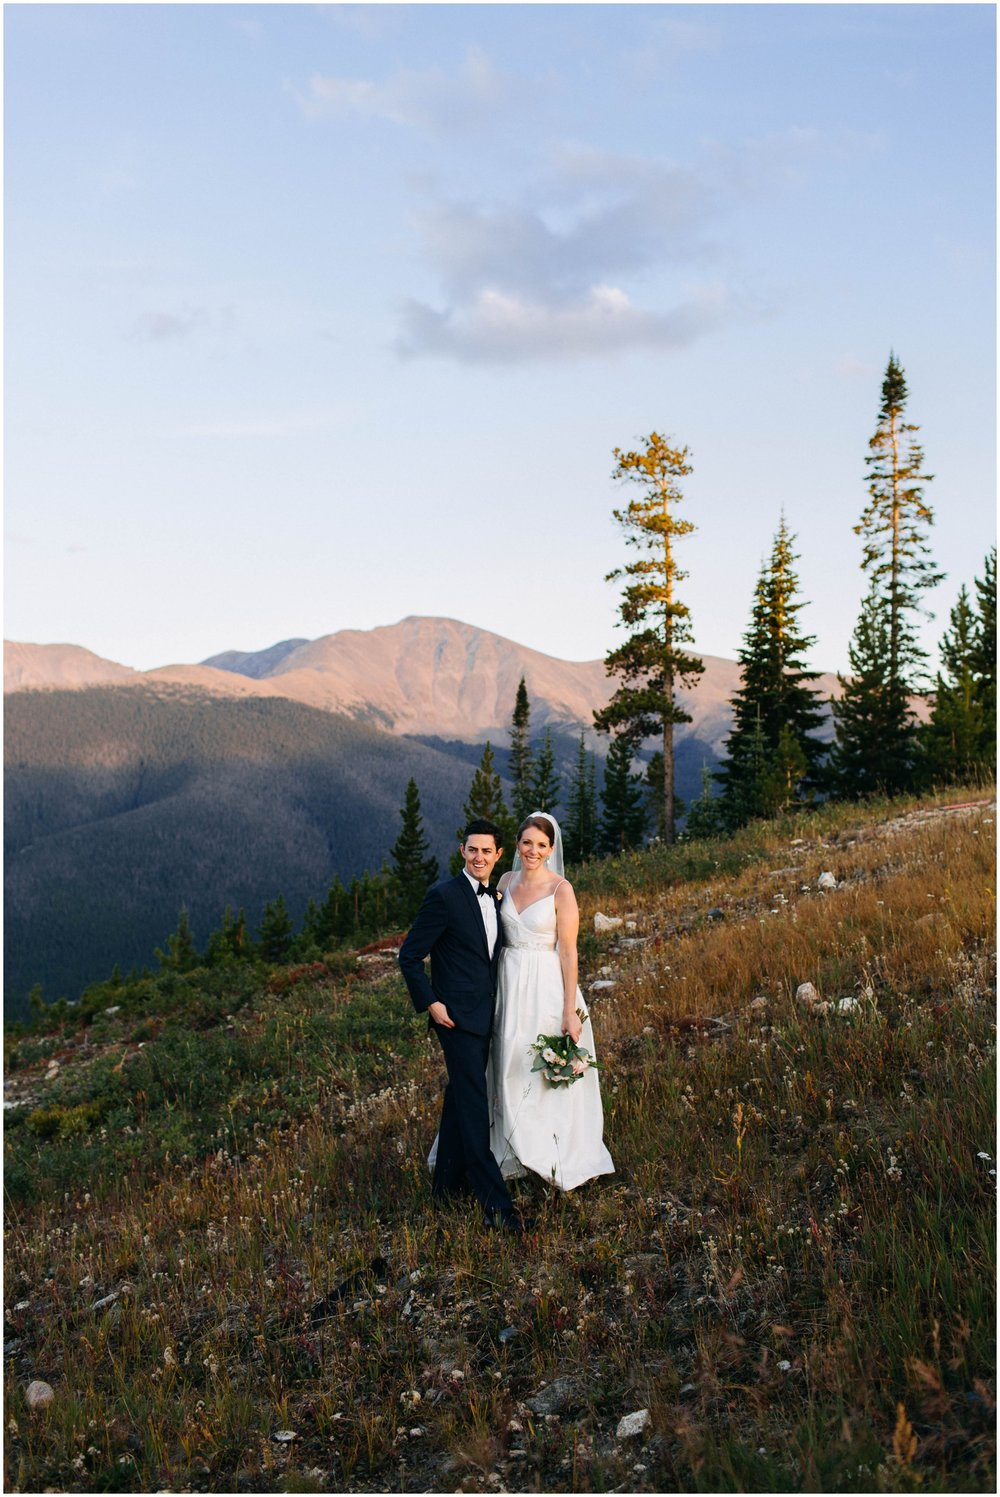 NadegeandJoe_elegant_winter_park_wedding_lodge_at_sunspot_mountain_taylor_powers_0234.jpg